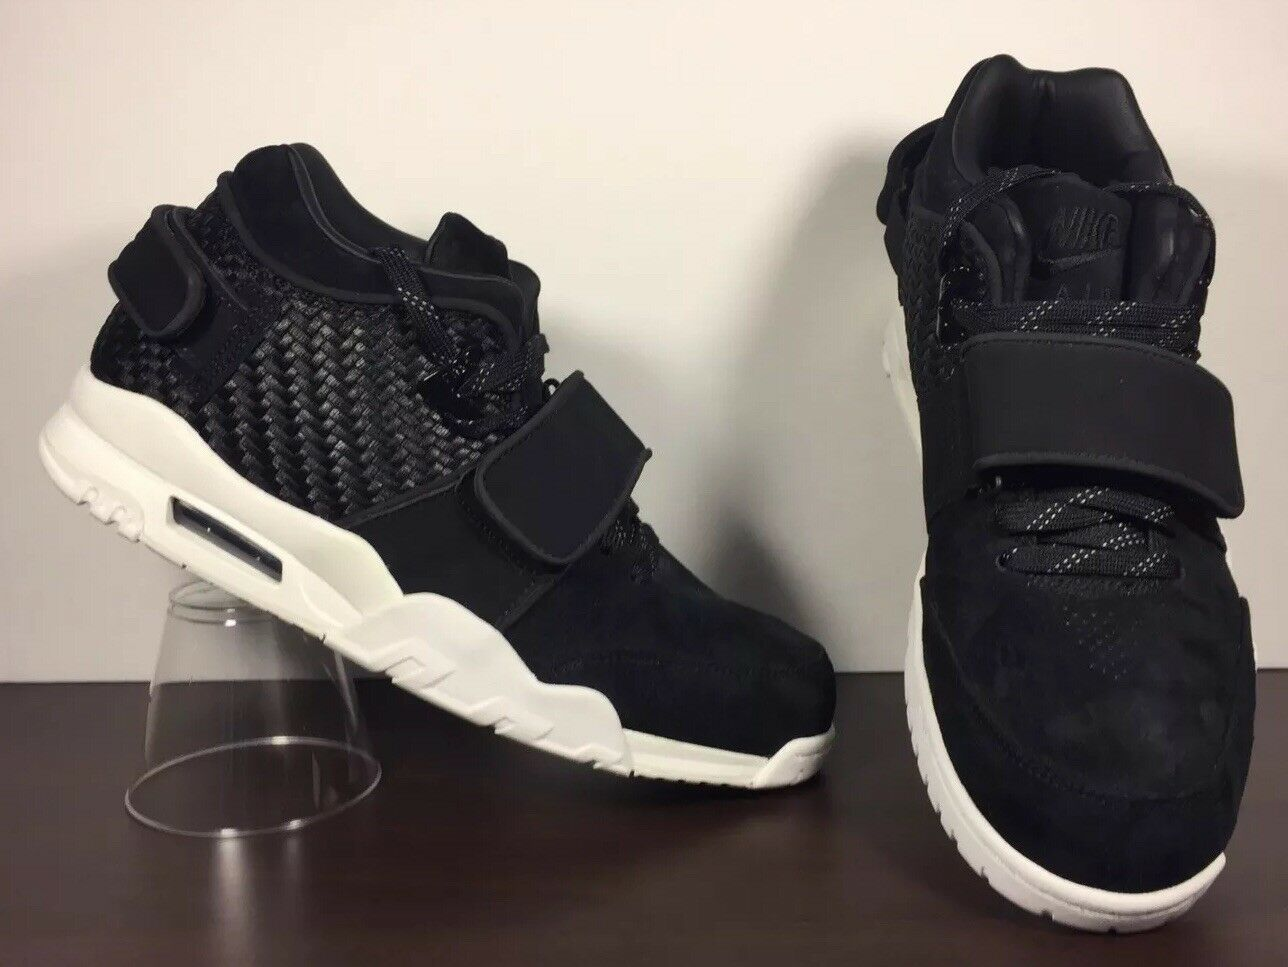 Nike Air Victor Cruz Trainer Black White Suede shoes Men's Size 10.5  777535-004